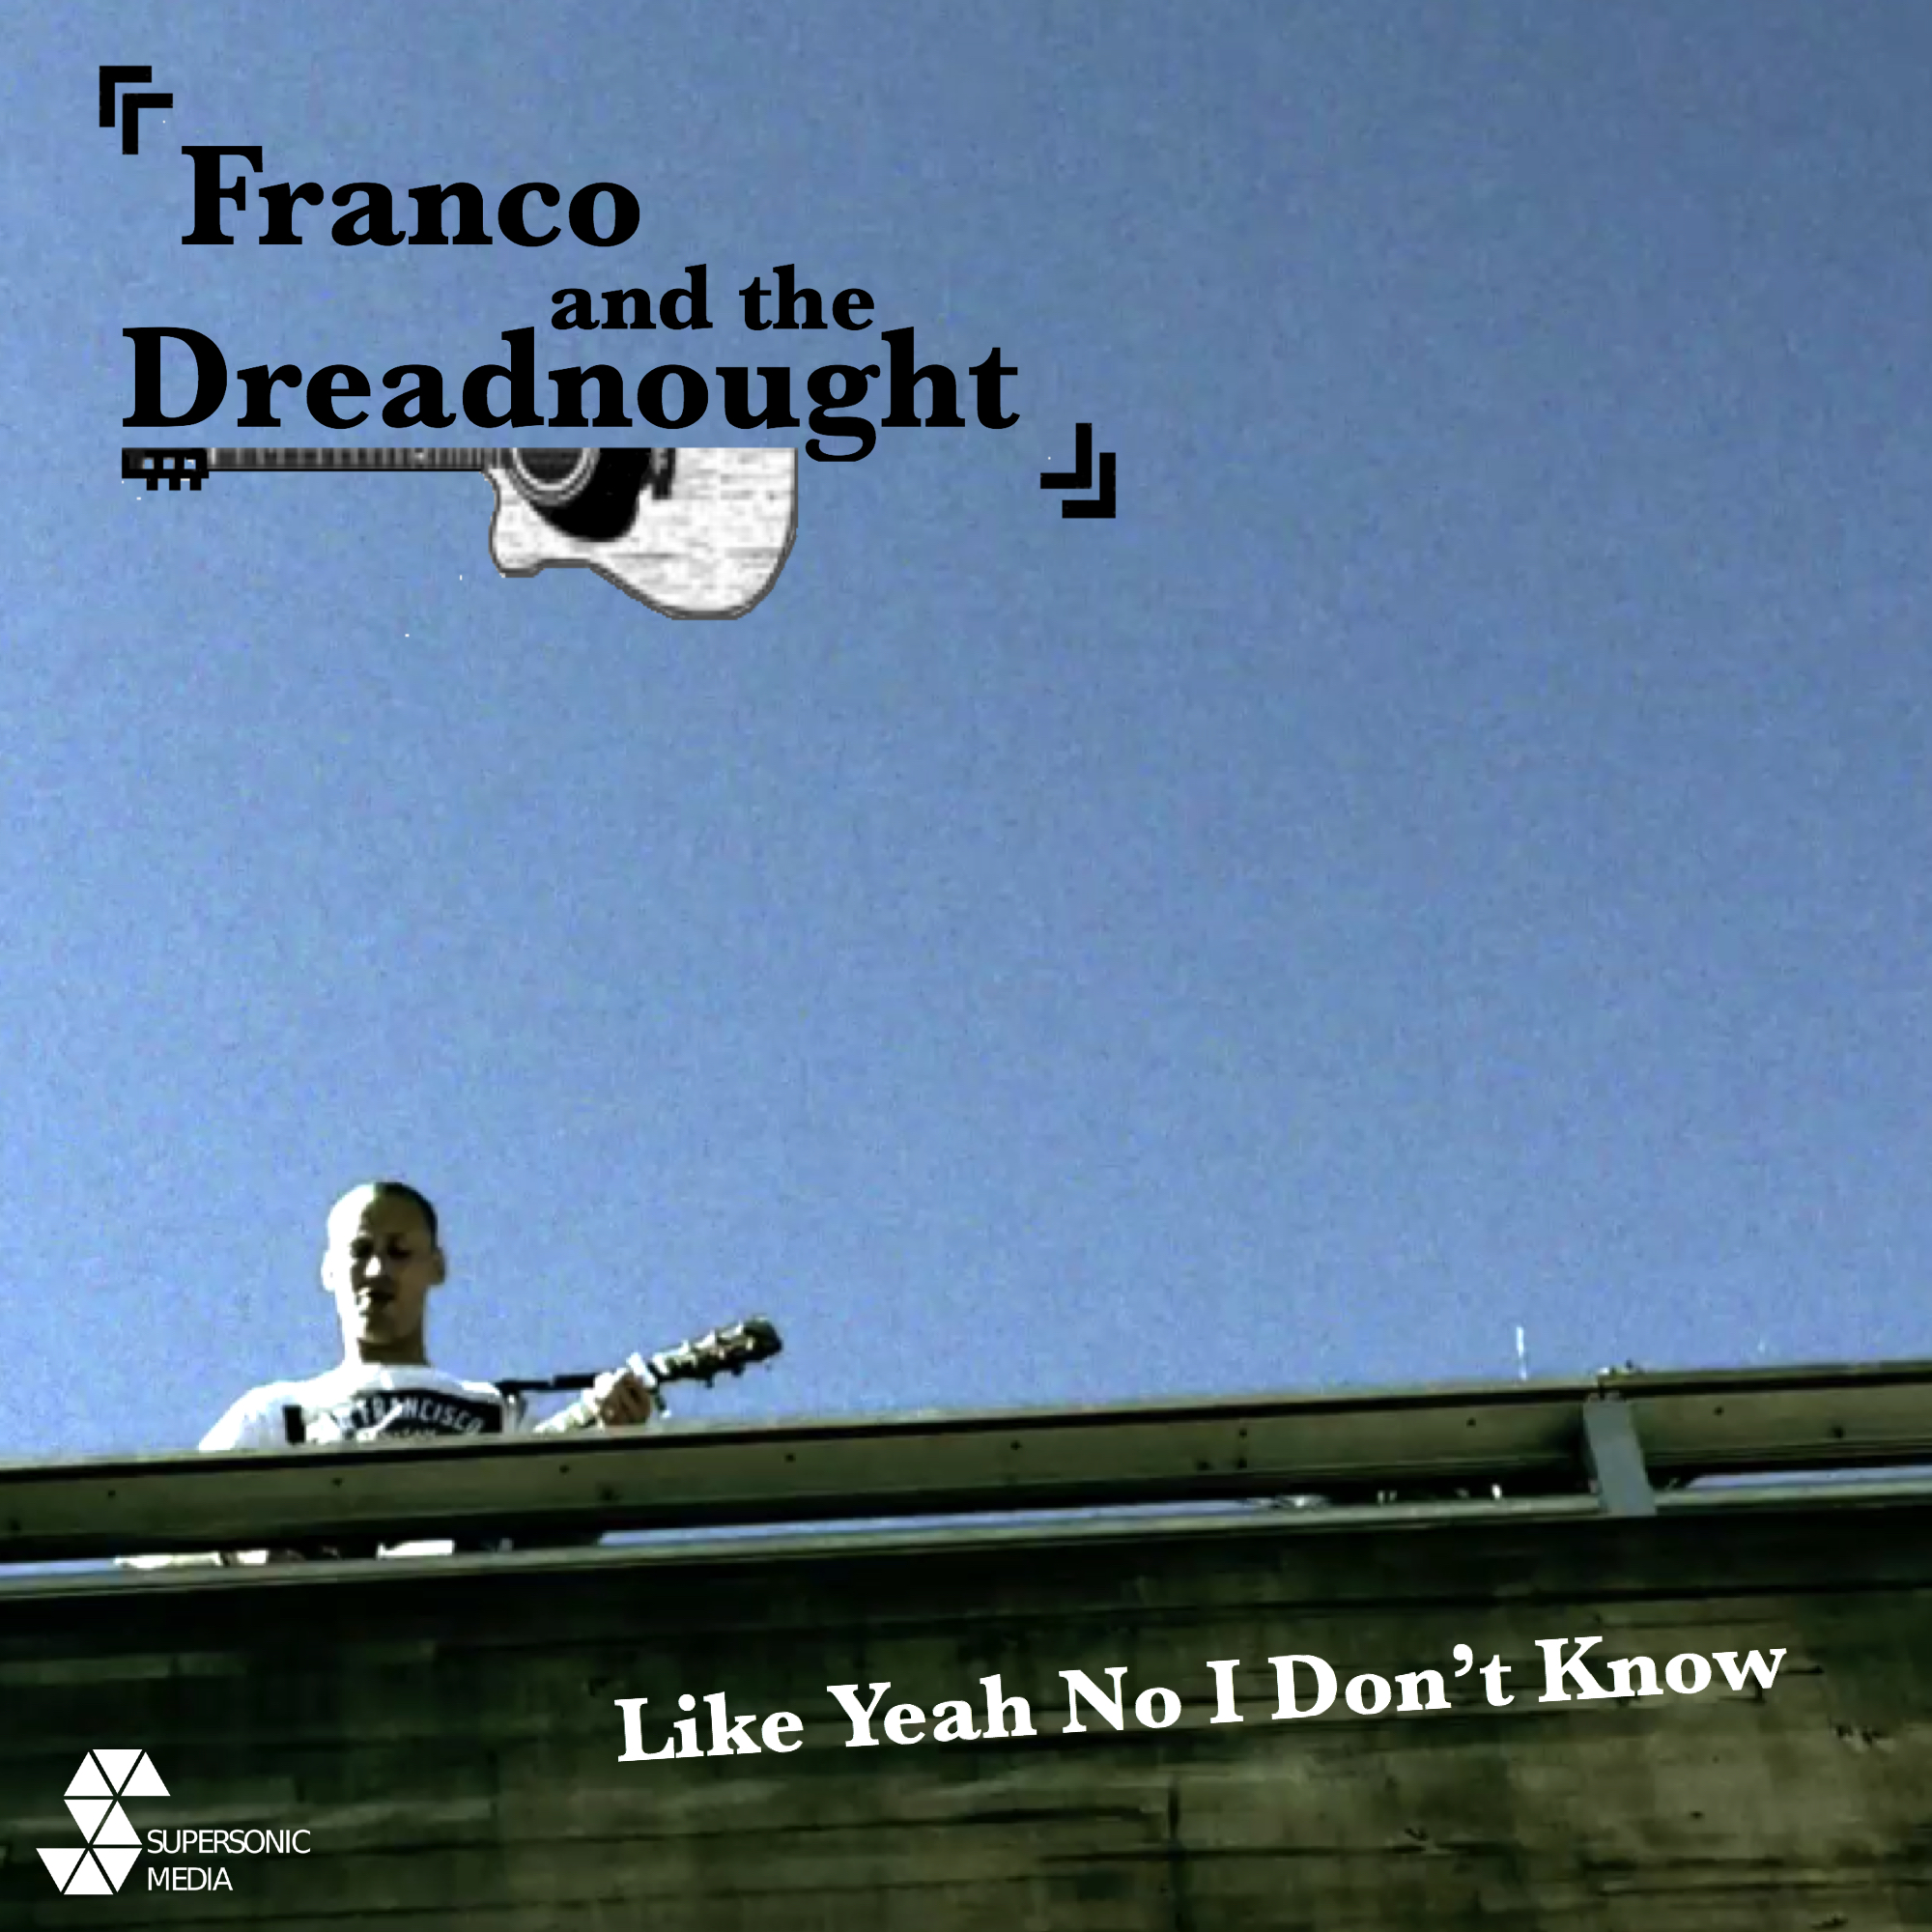 Franco & The Dreadnought - Like Yeah No I Don't Know